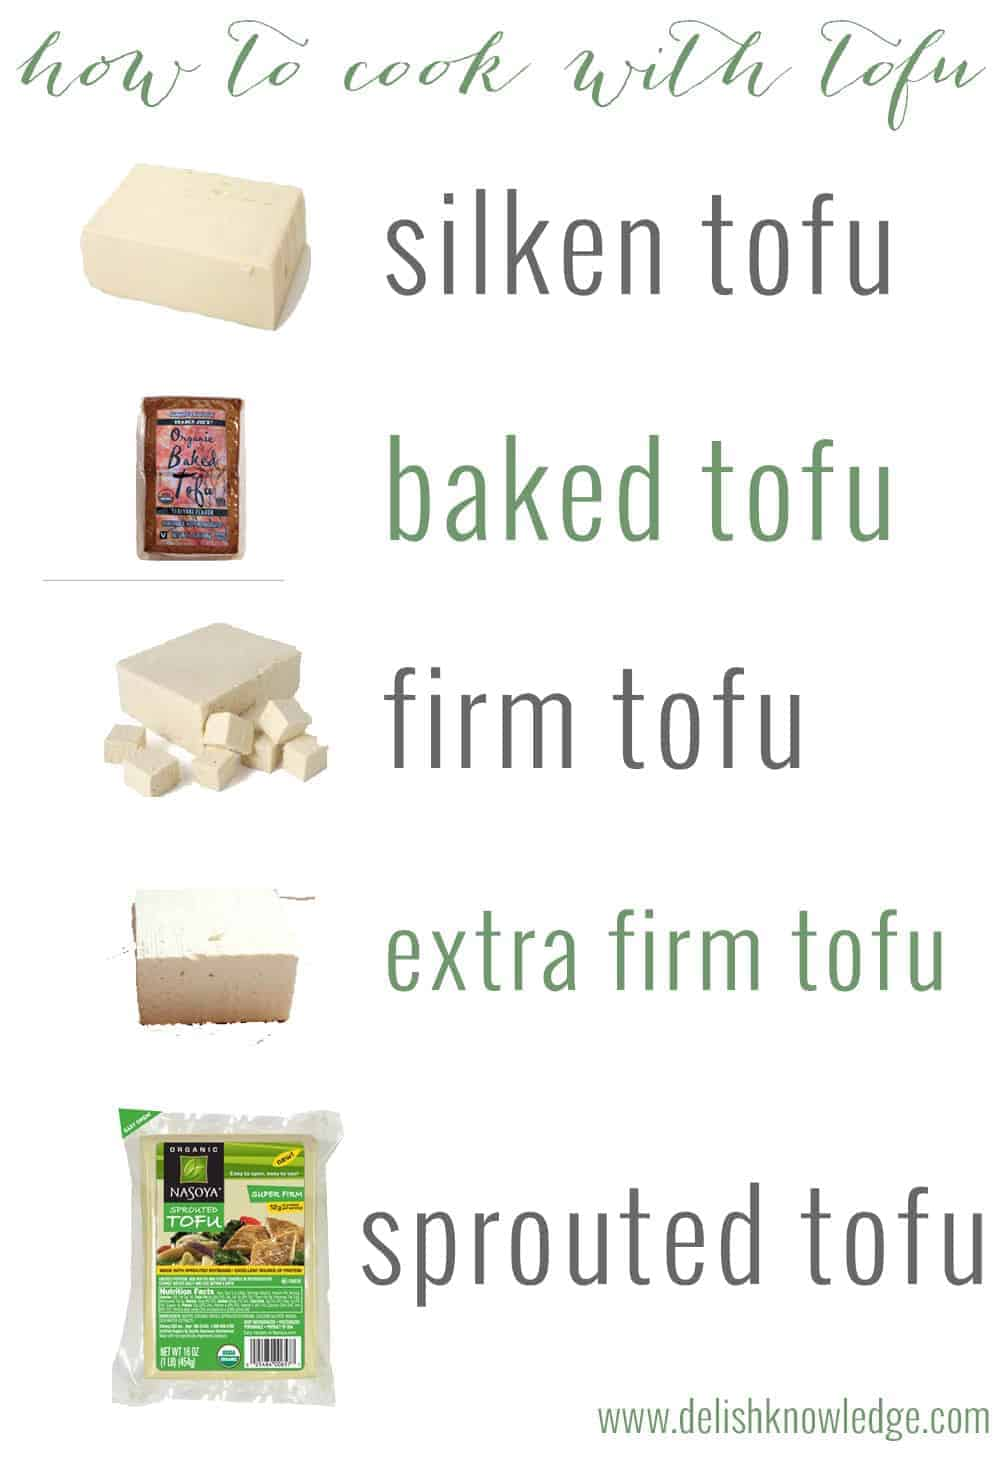 the various types of tofu available to cook with